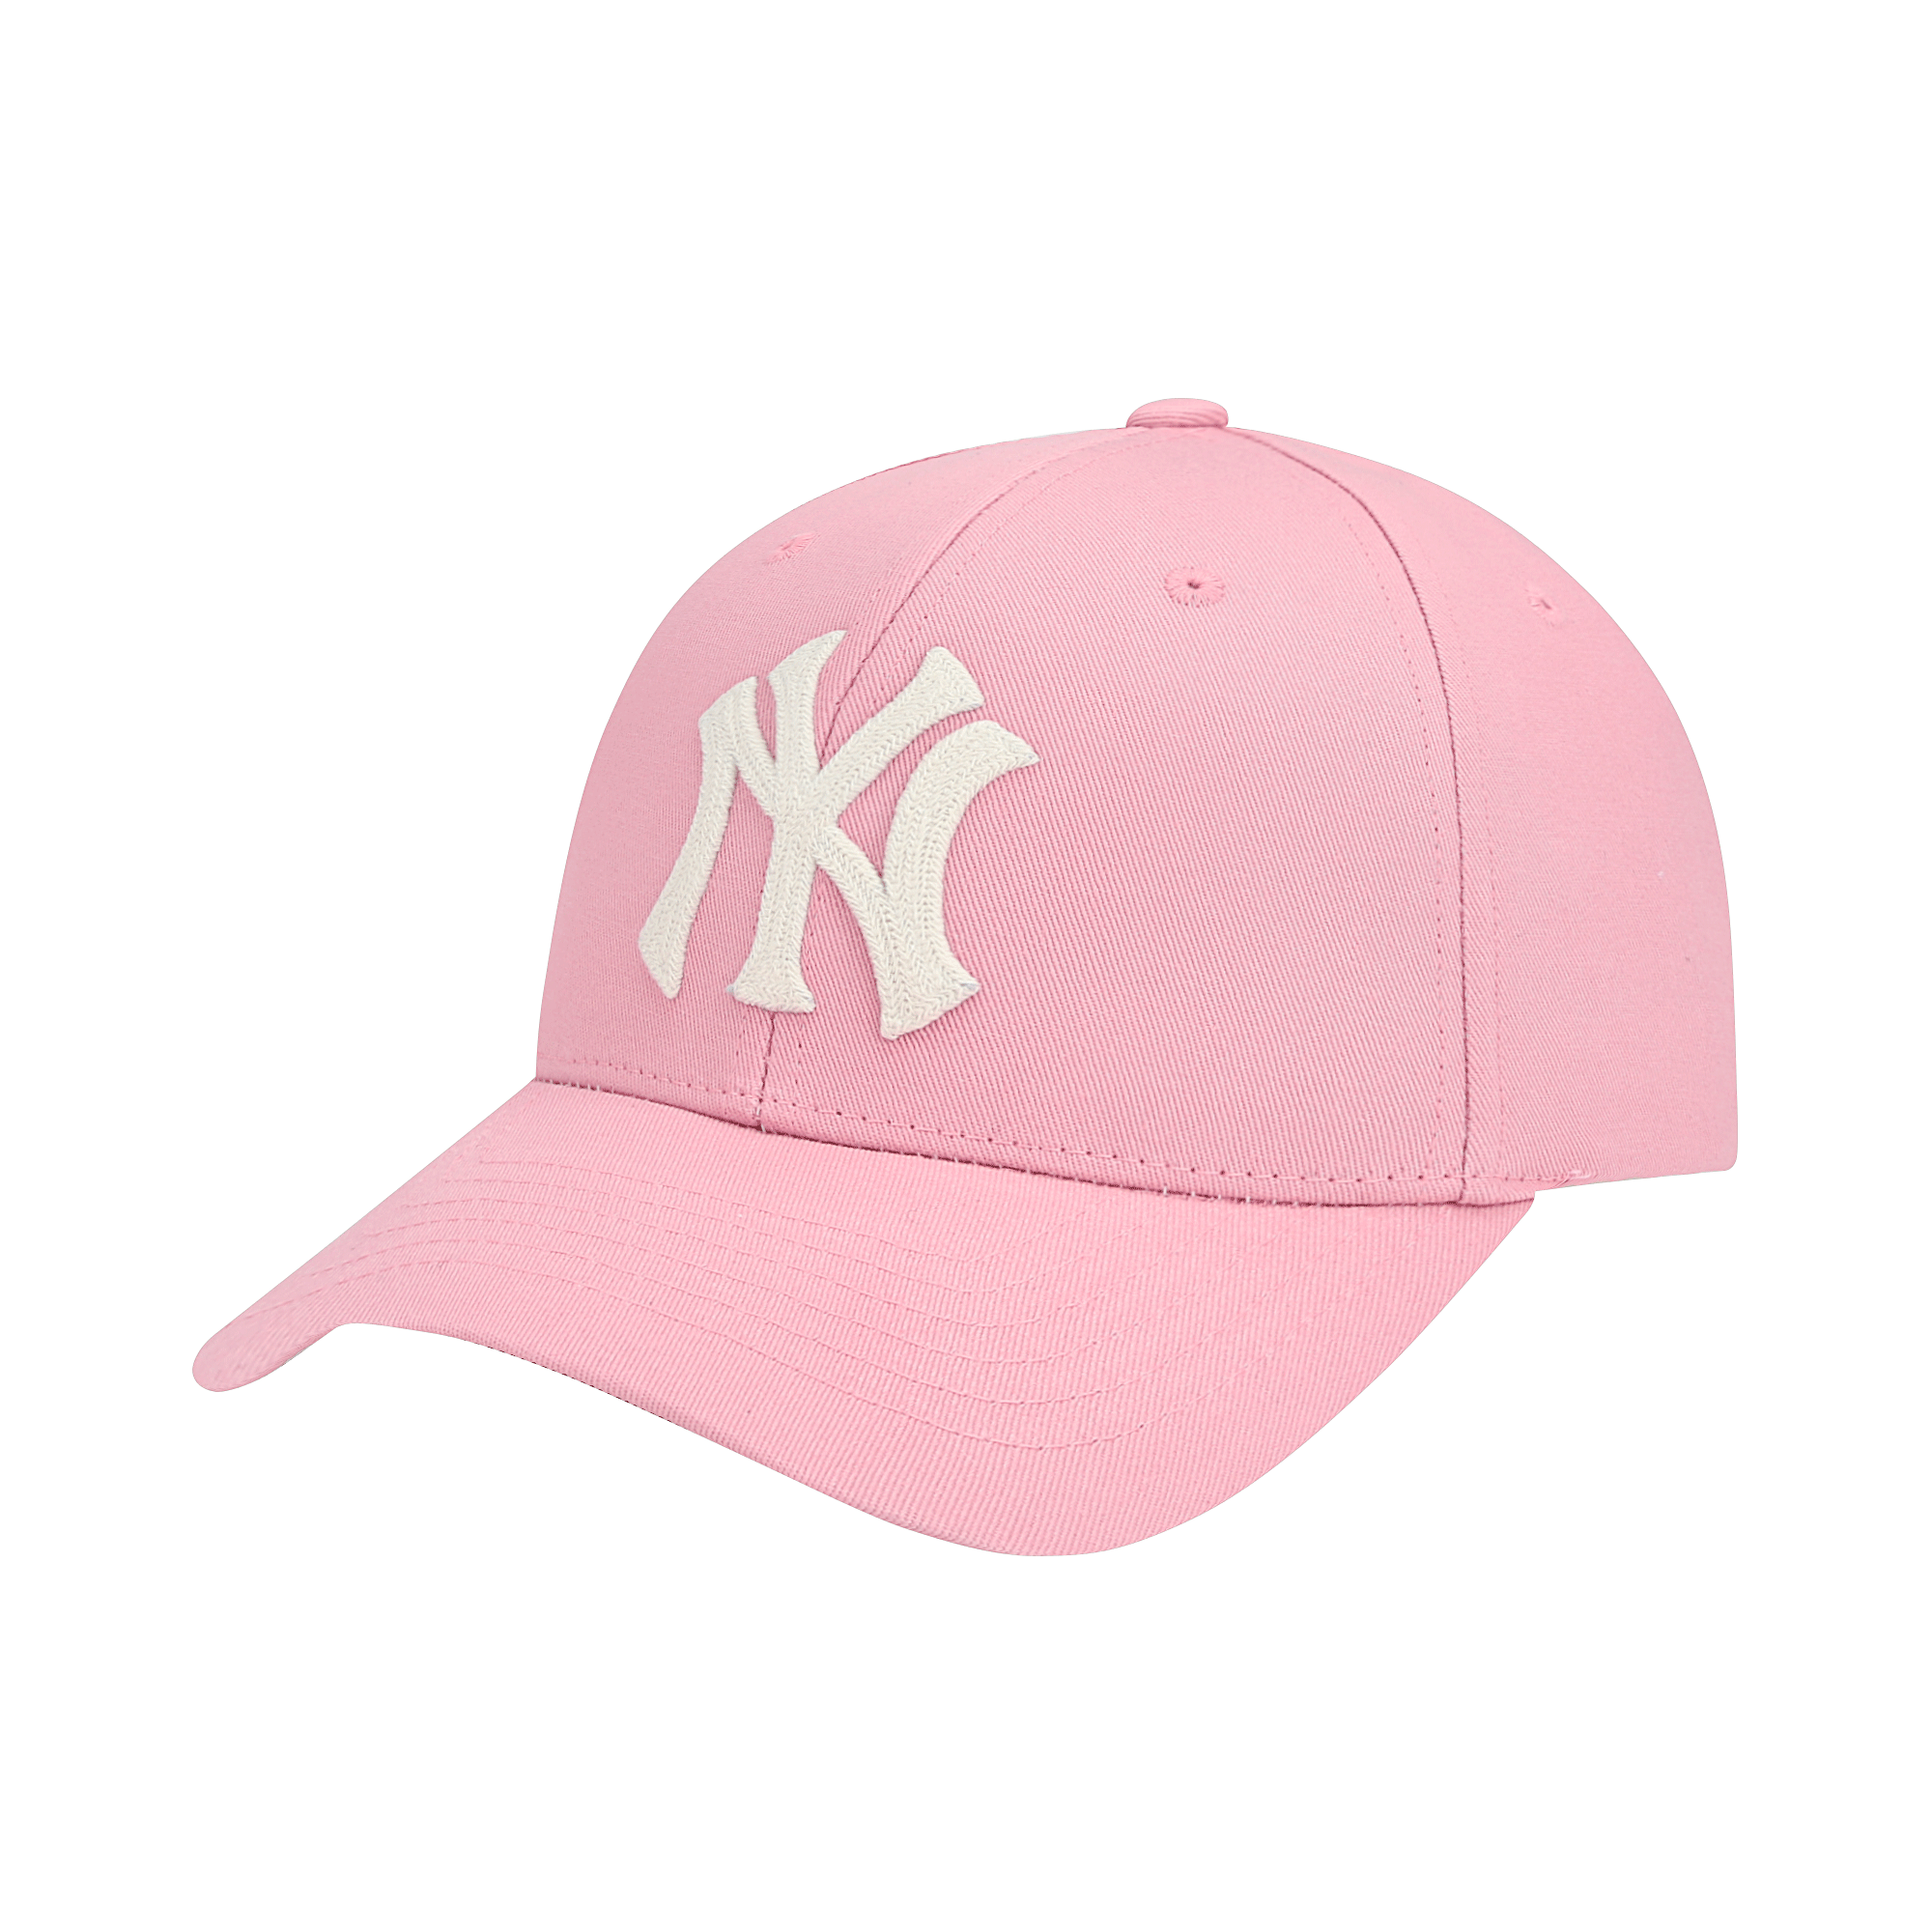 NEW YORK YANKEES JOUY DECO ADJUSTABLE CAP